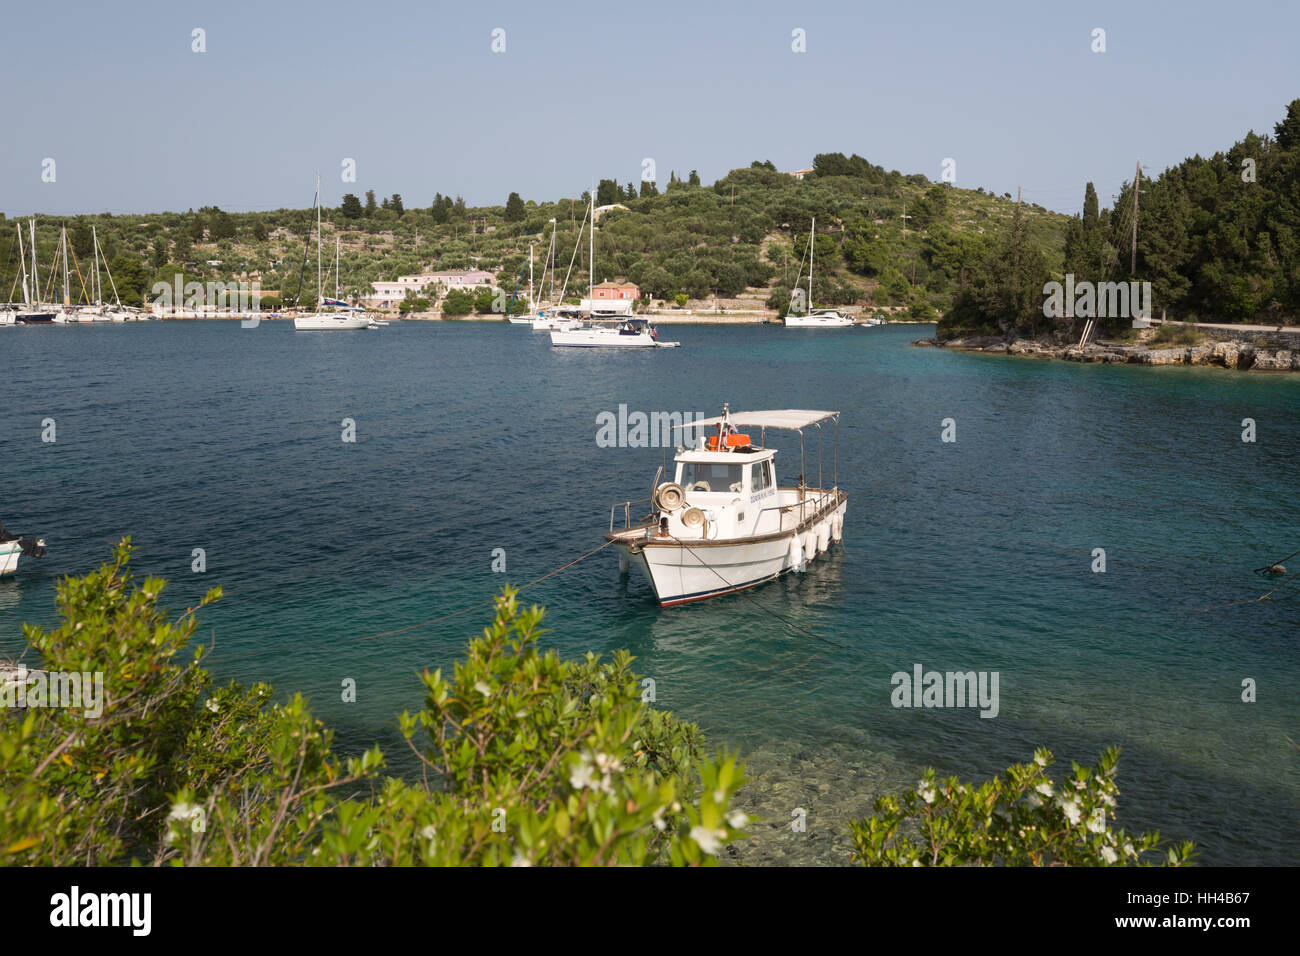 View to Mongonisi Island at southern tip of Paxos Island, Paxos, Ionian Islands, Greek Islands, Greece, Europe - Stock Image